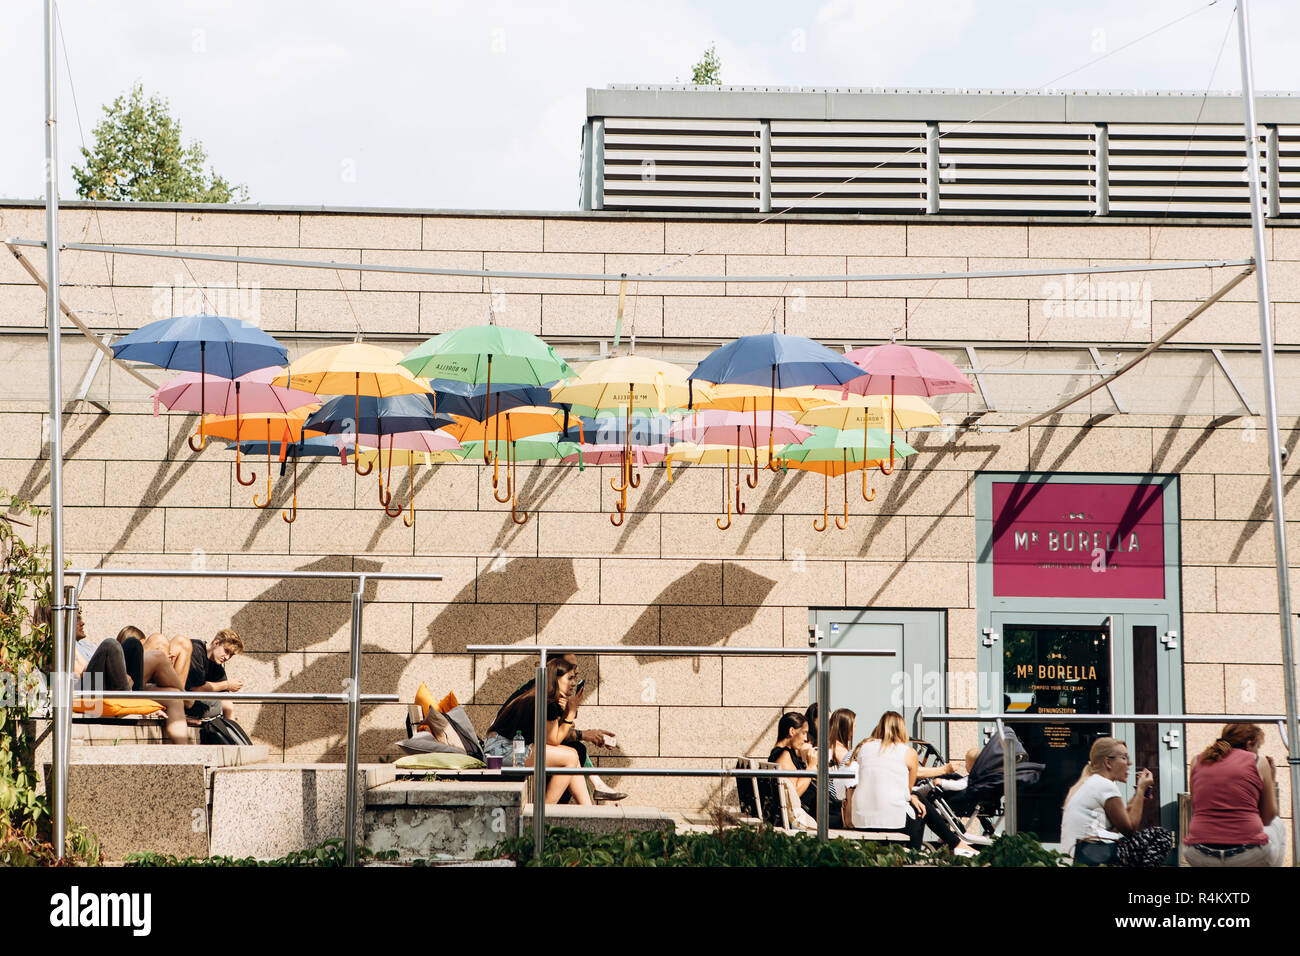 Germany, Leipzig, September 6, 2018: Creative cafe in Leipzig. Lots of colorful umbrellas hang overhead. People relax, chat and eat - Stock Image